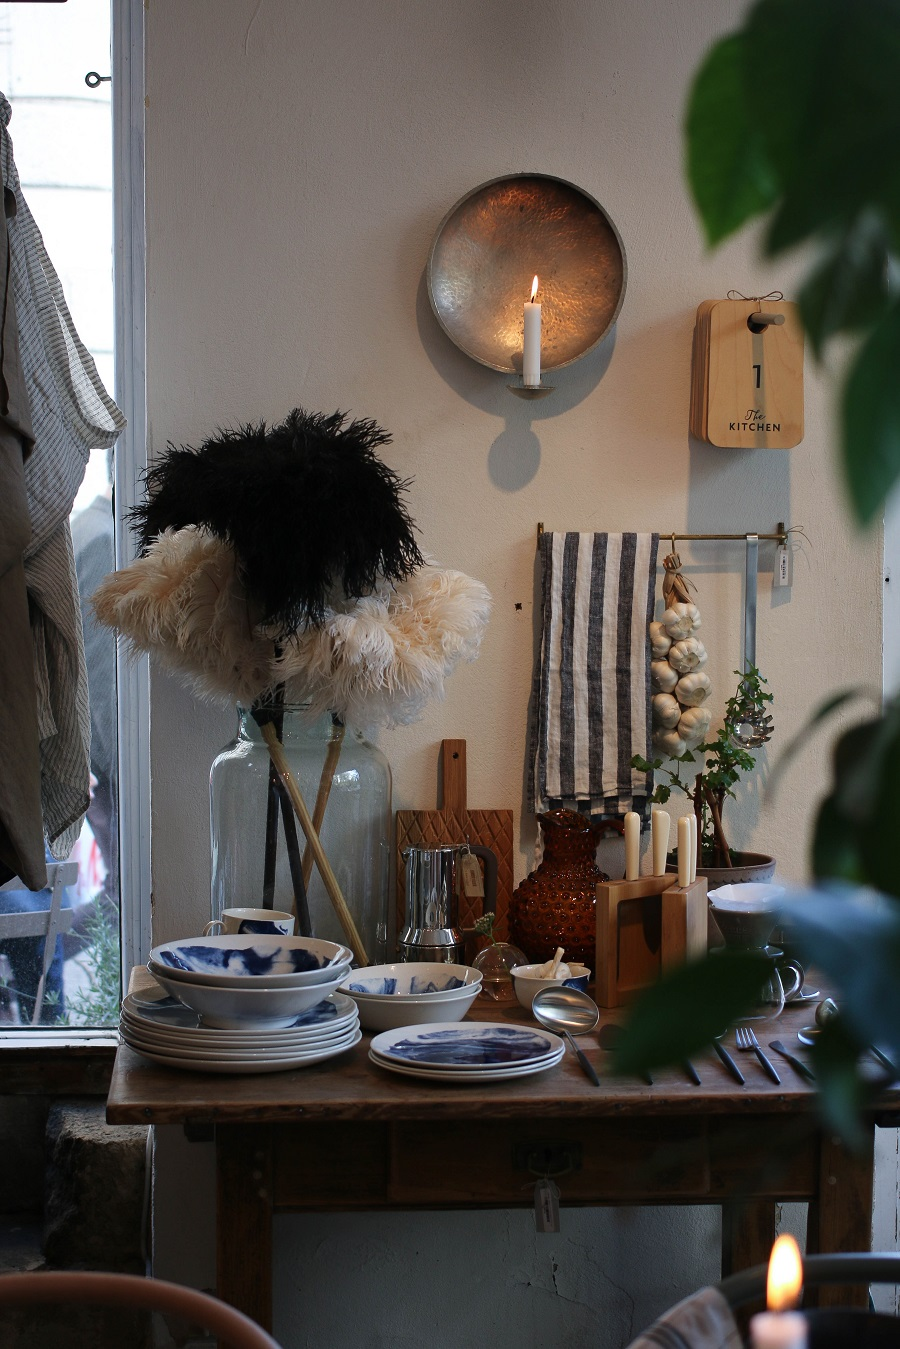 Gothenburg's Design Stores = Artilleriet, The Kitchen